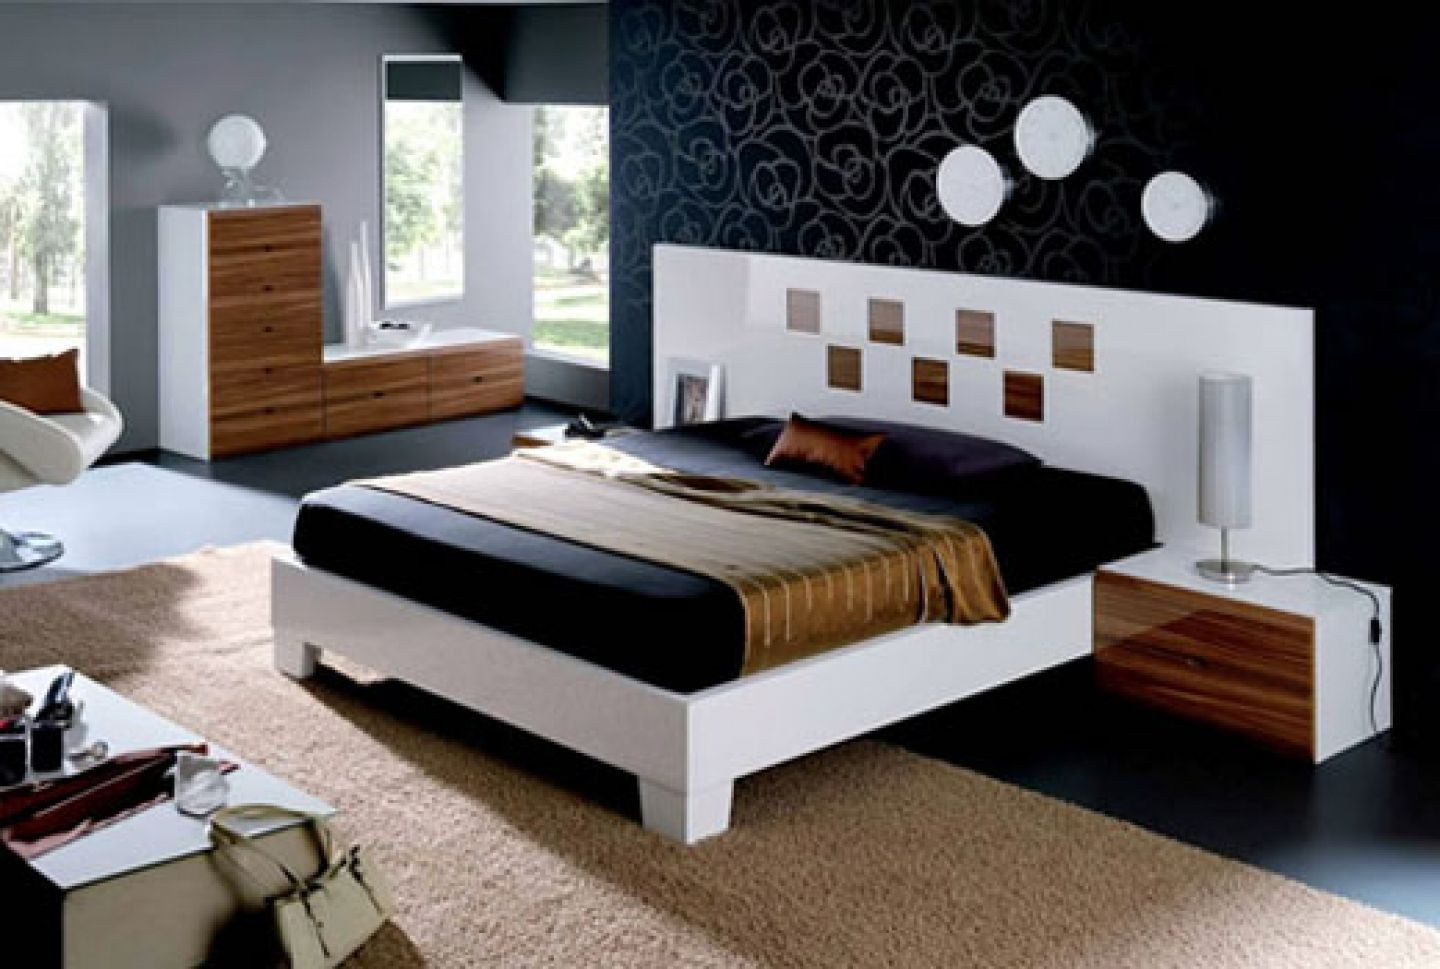 Modern bed sheet design - Modern Bedroom Designs For Couples Master Bedroom Decorating Ideas Contemporary